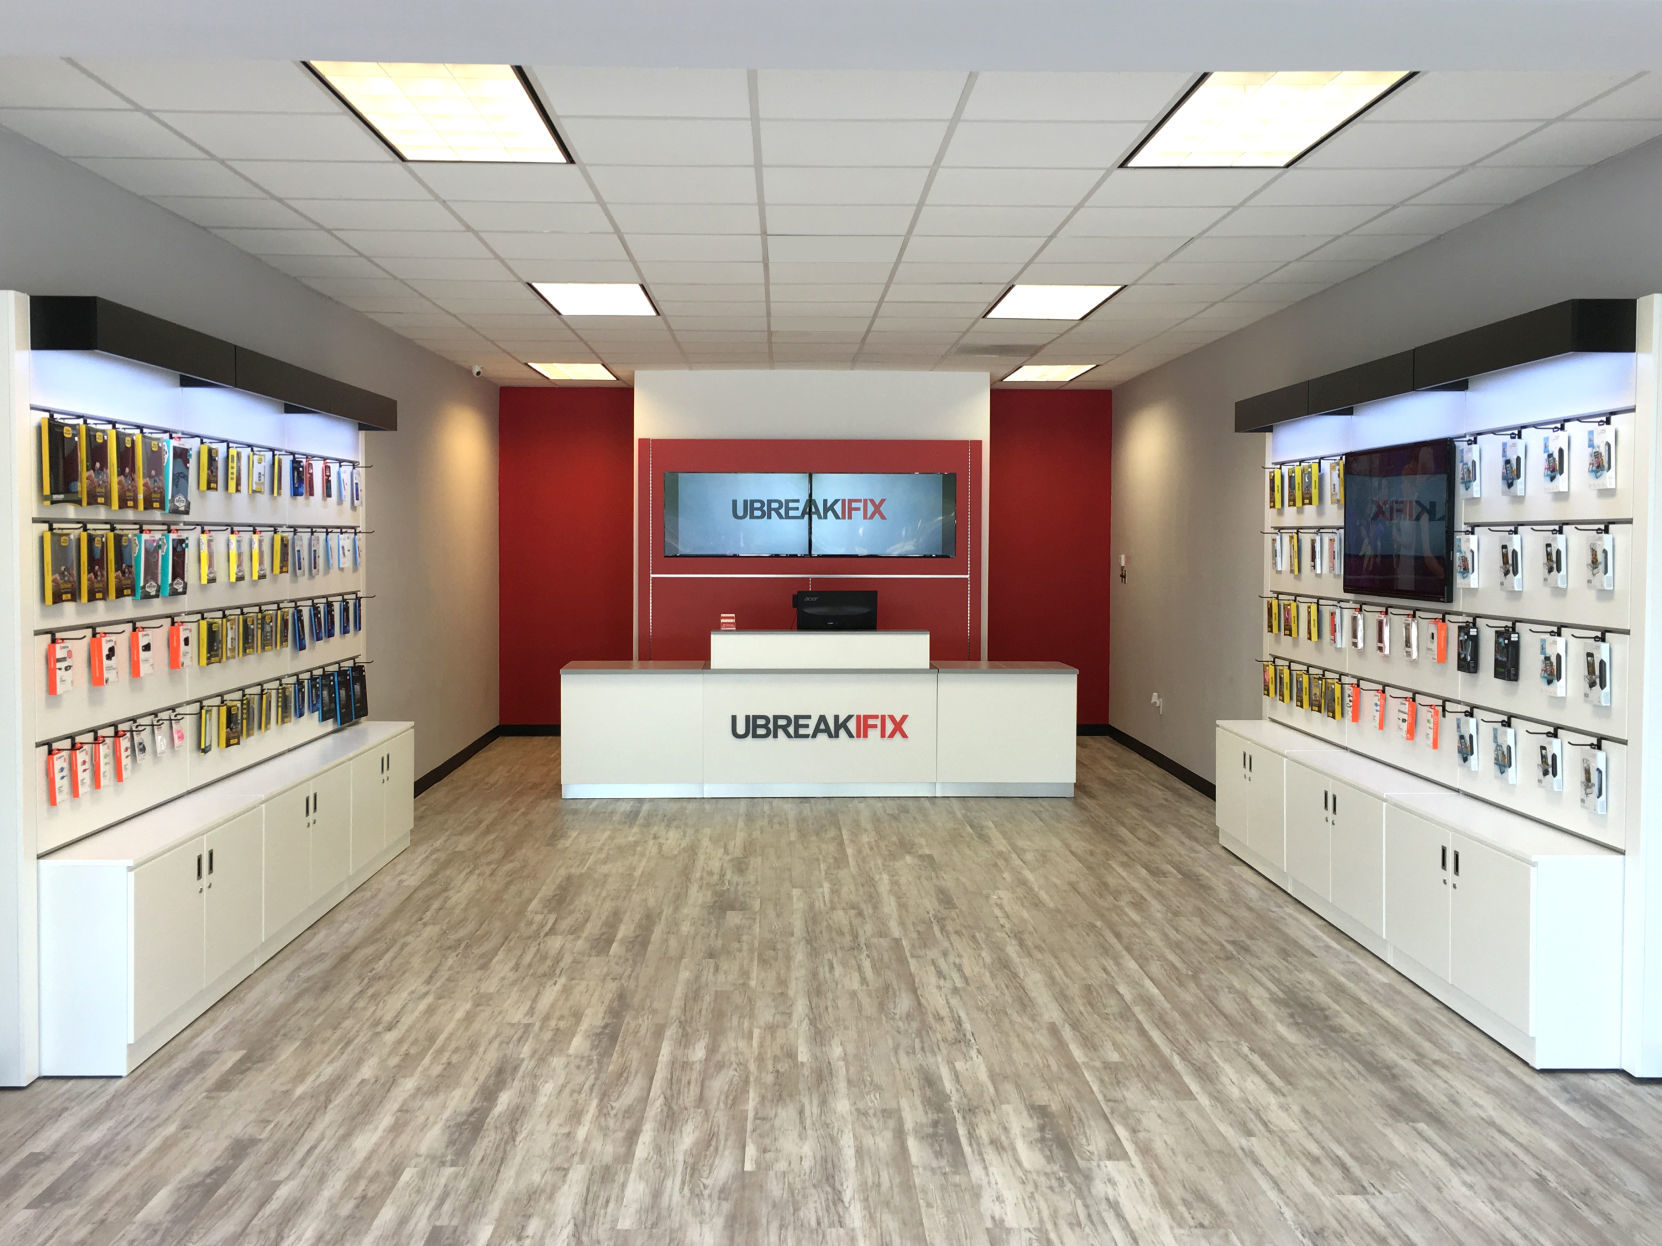 Superbe UBreakiFix, A New Technology Repair Store, Is Located At 1246 Blue Lakes  Blvd. N., Suite 400, Twin Falls. This Stock Image Was Taken Of One Of Its  Stores.